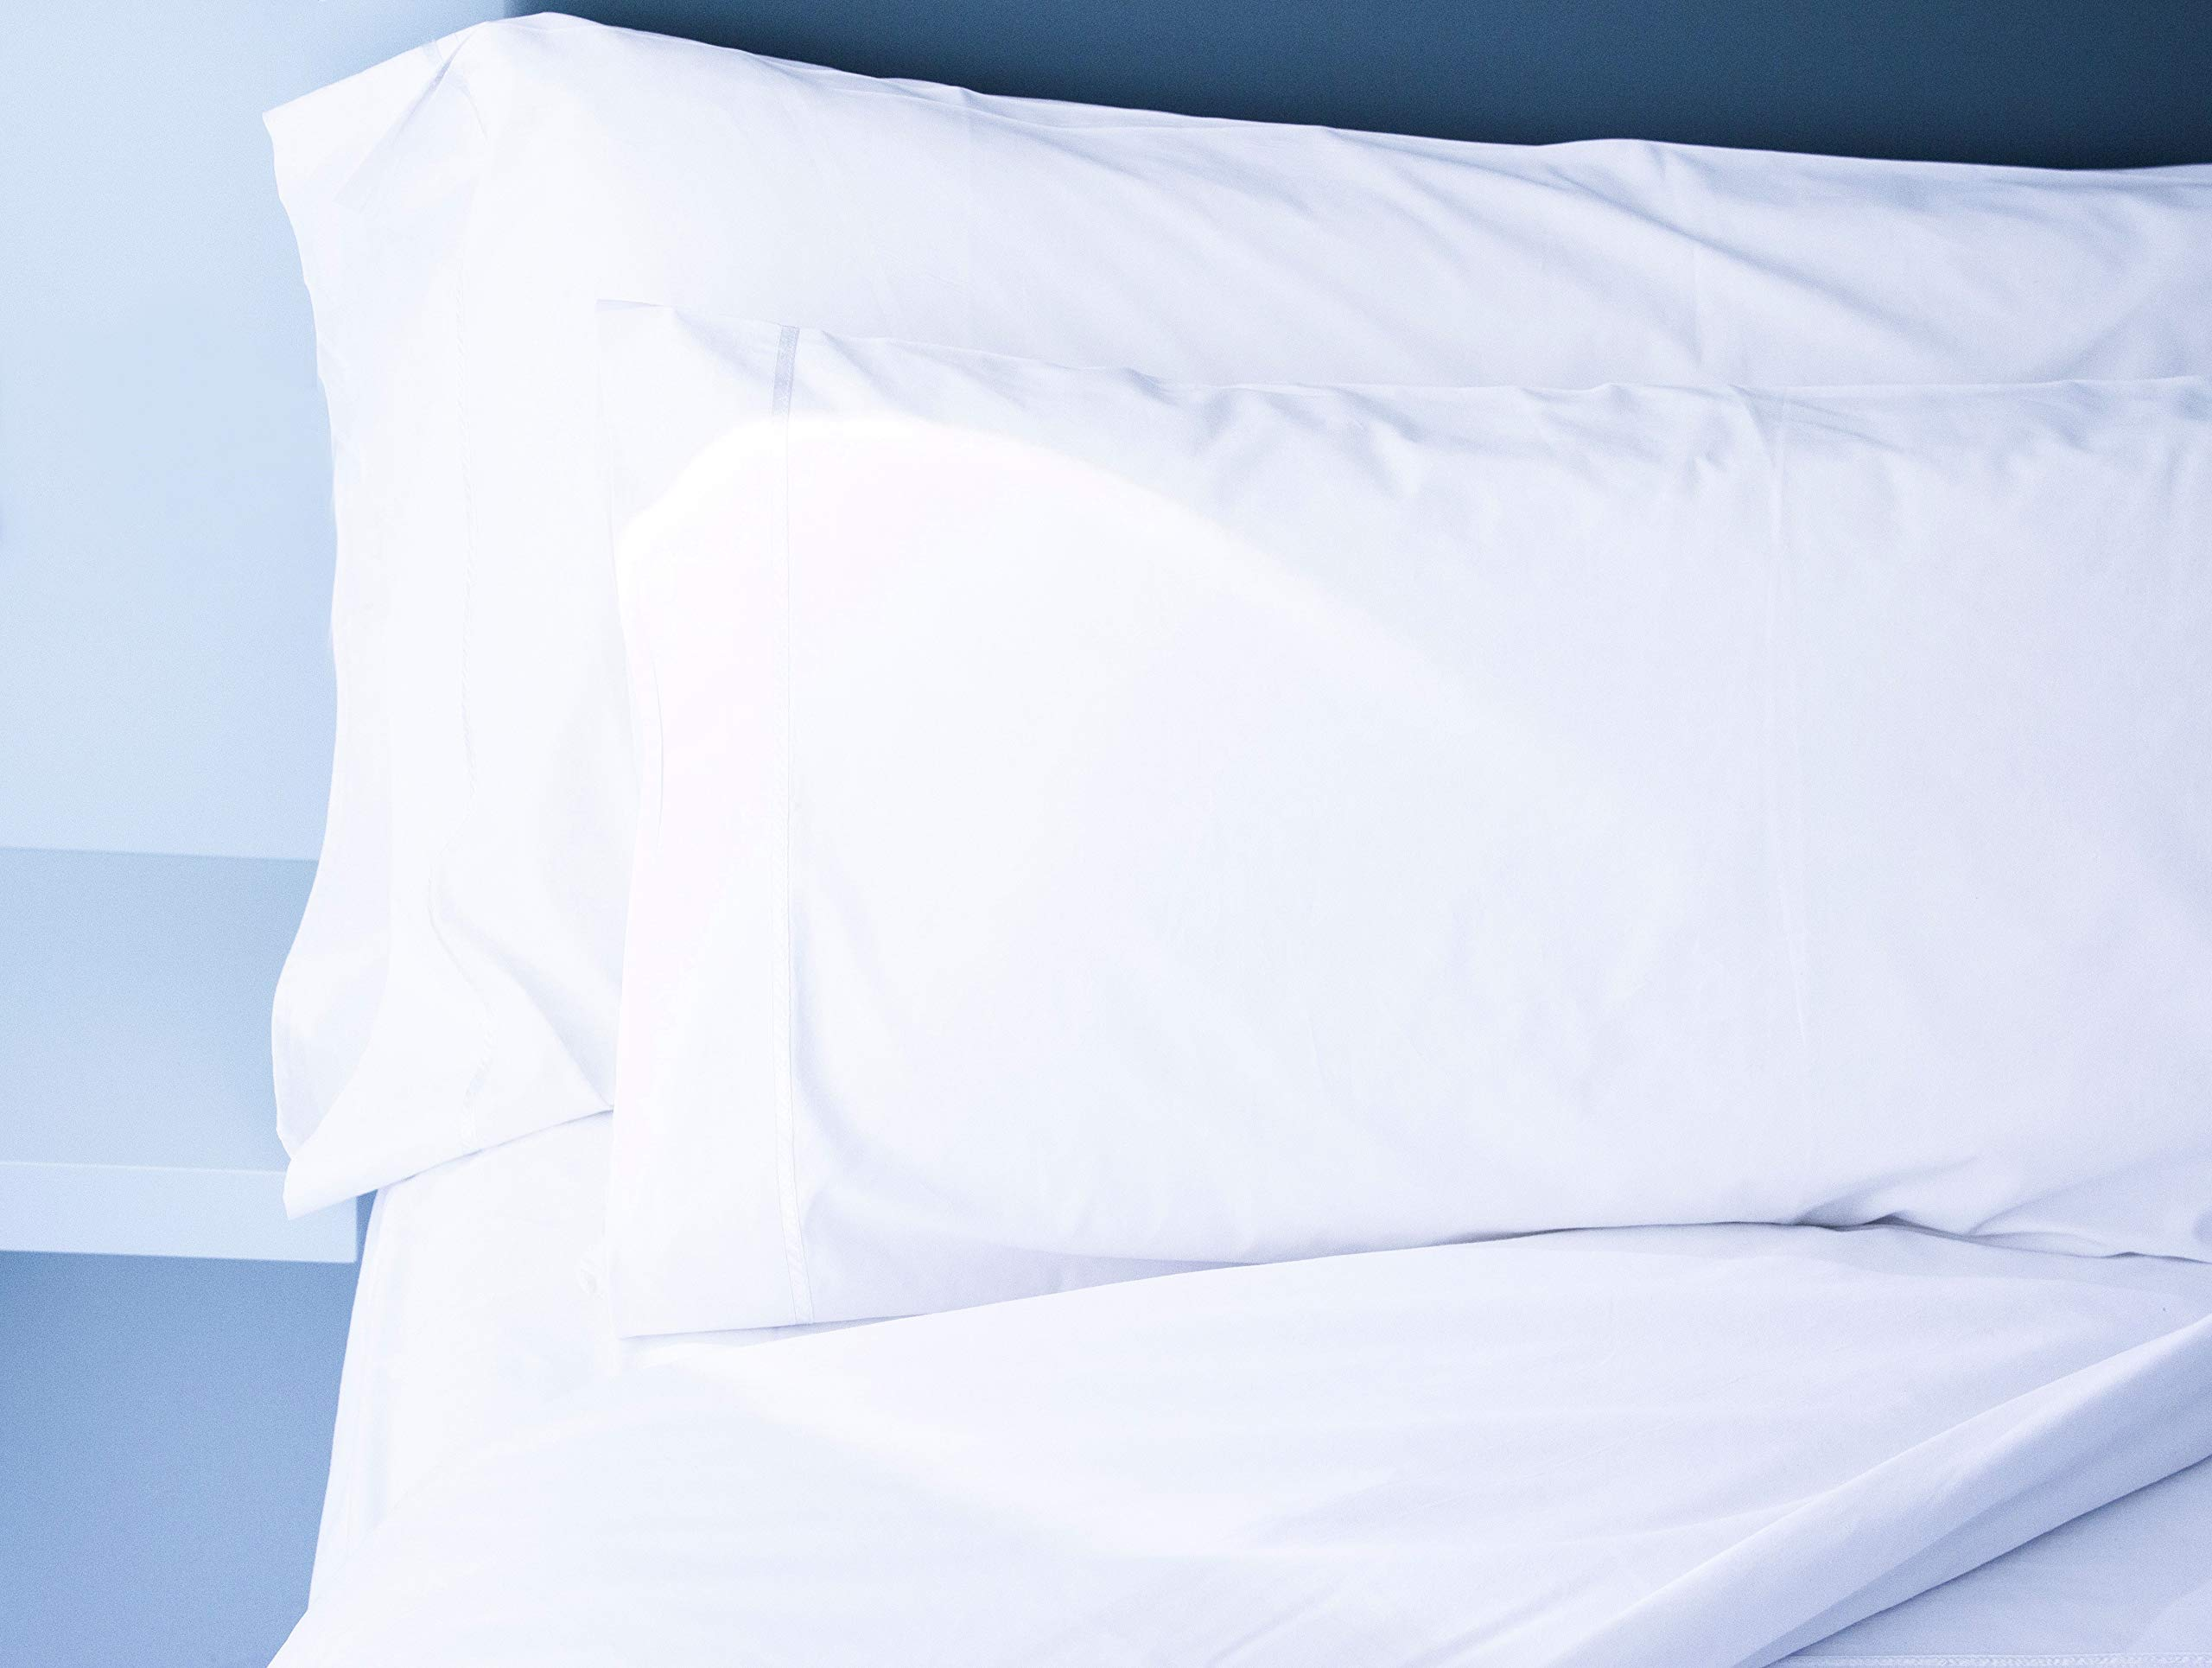 Atlas 1 Economy B Grade Pillow Cases Covers Standard Size White 130 Thread Count Hotel Pillow Cases